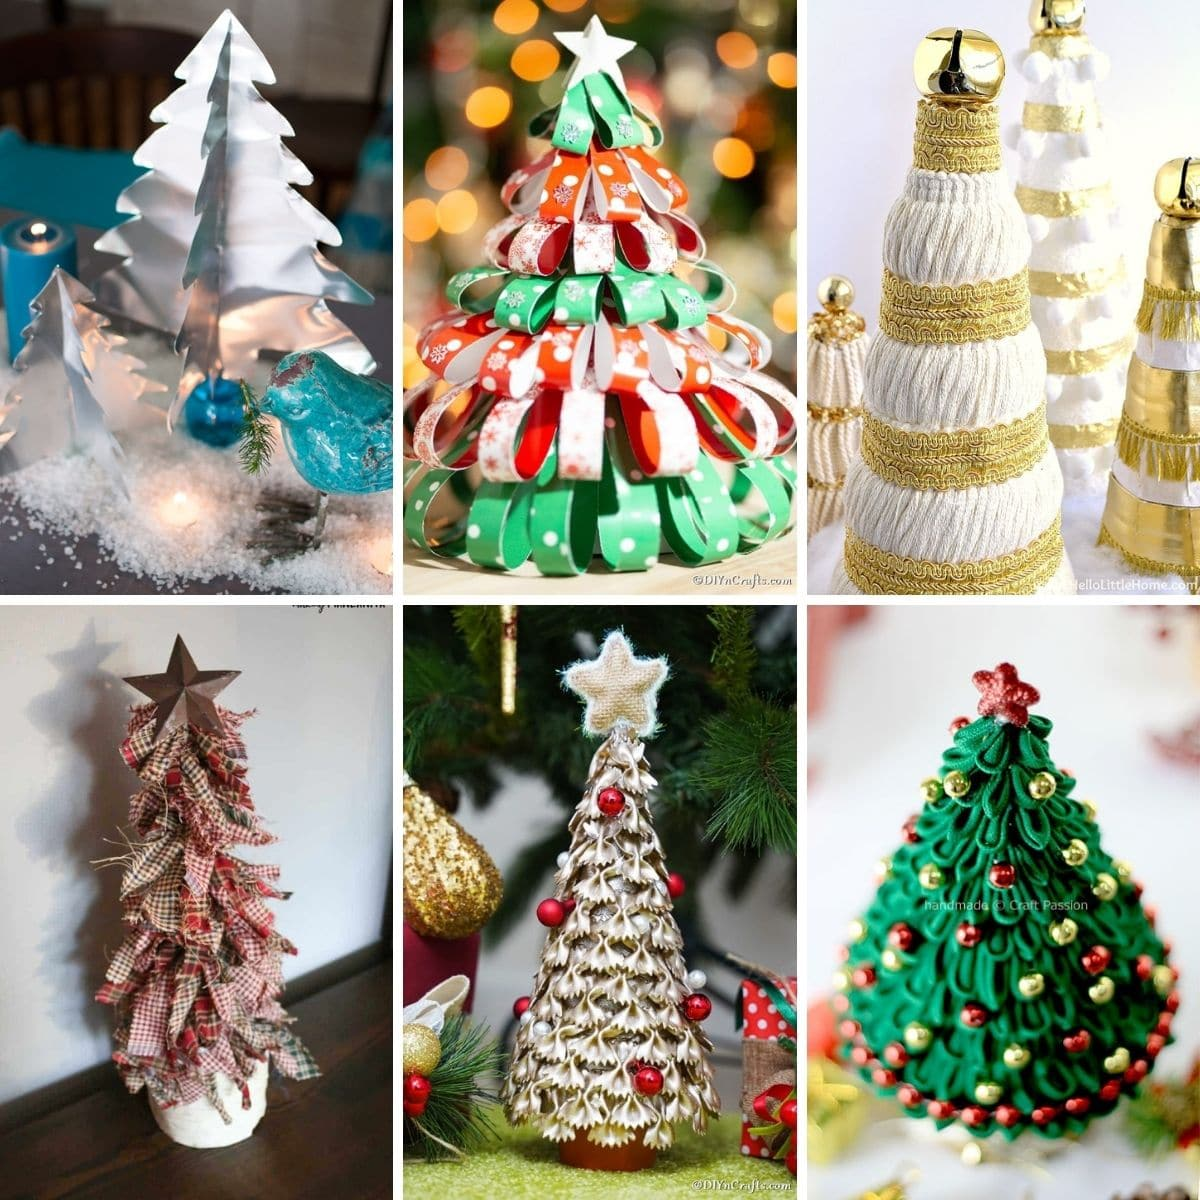 40 Festive Mini Christmas Tree Decorations And Ornaments